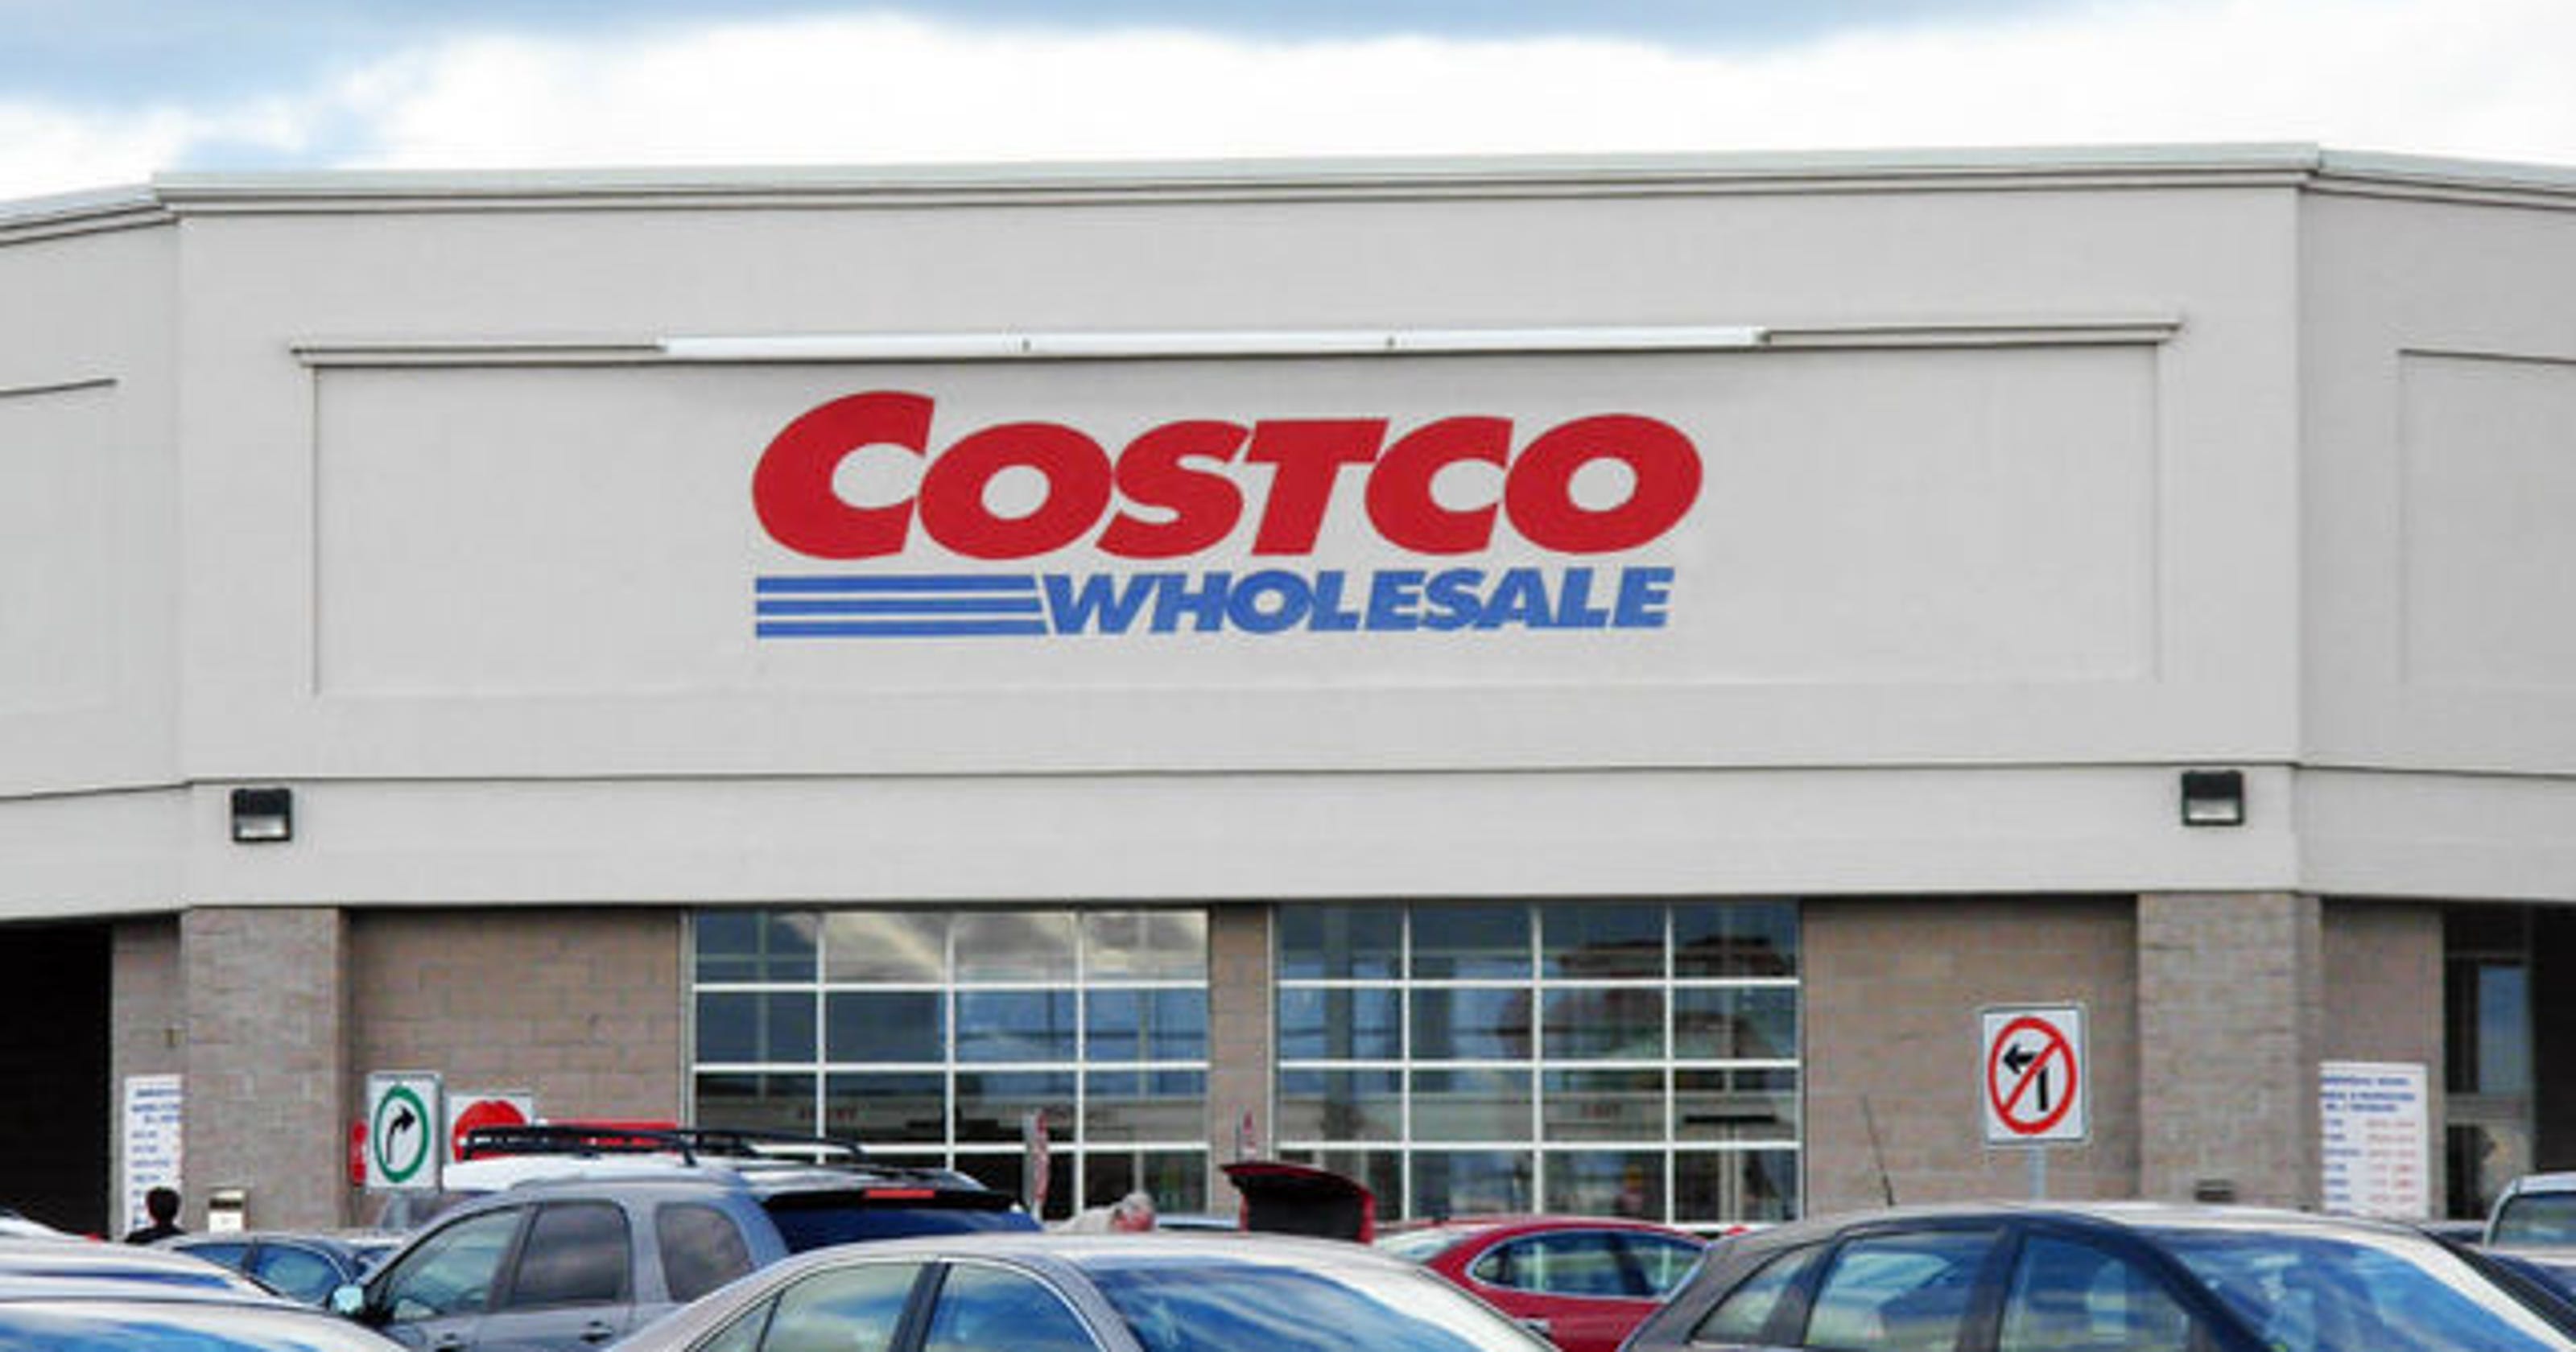 Port St. Lucie mayor to Costco: We want you